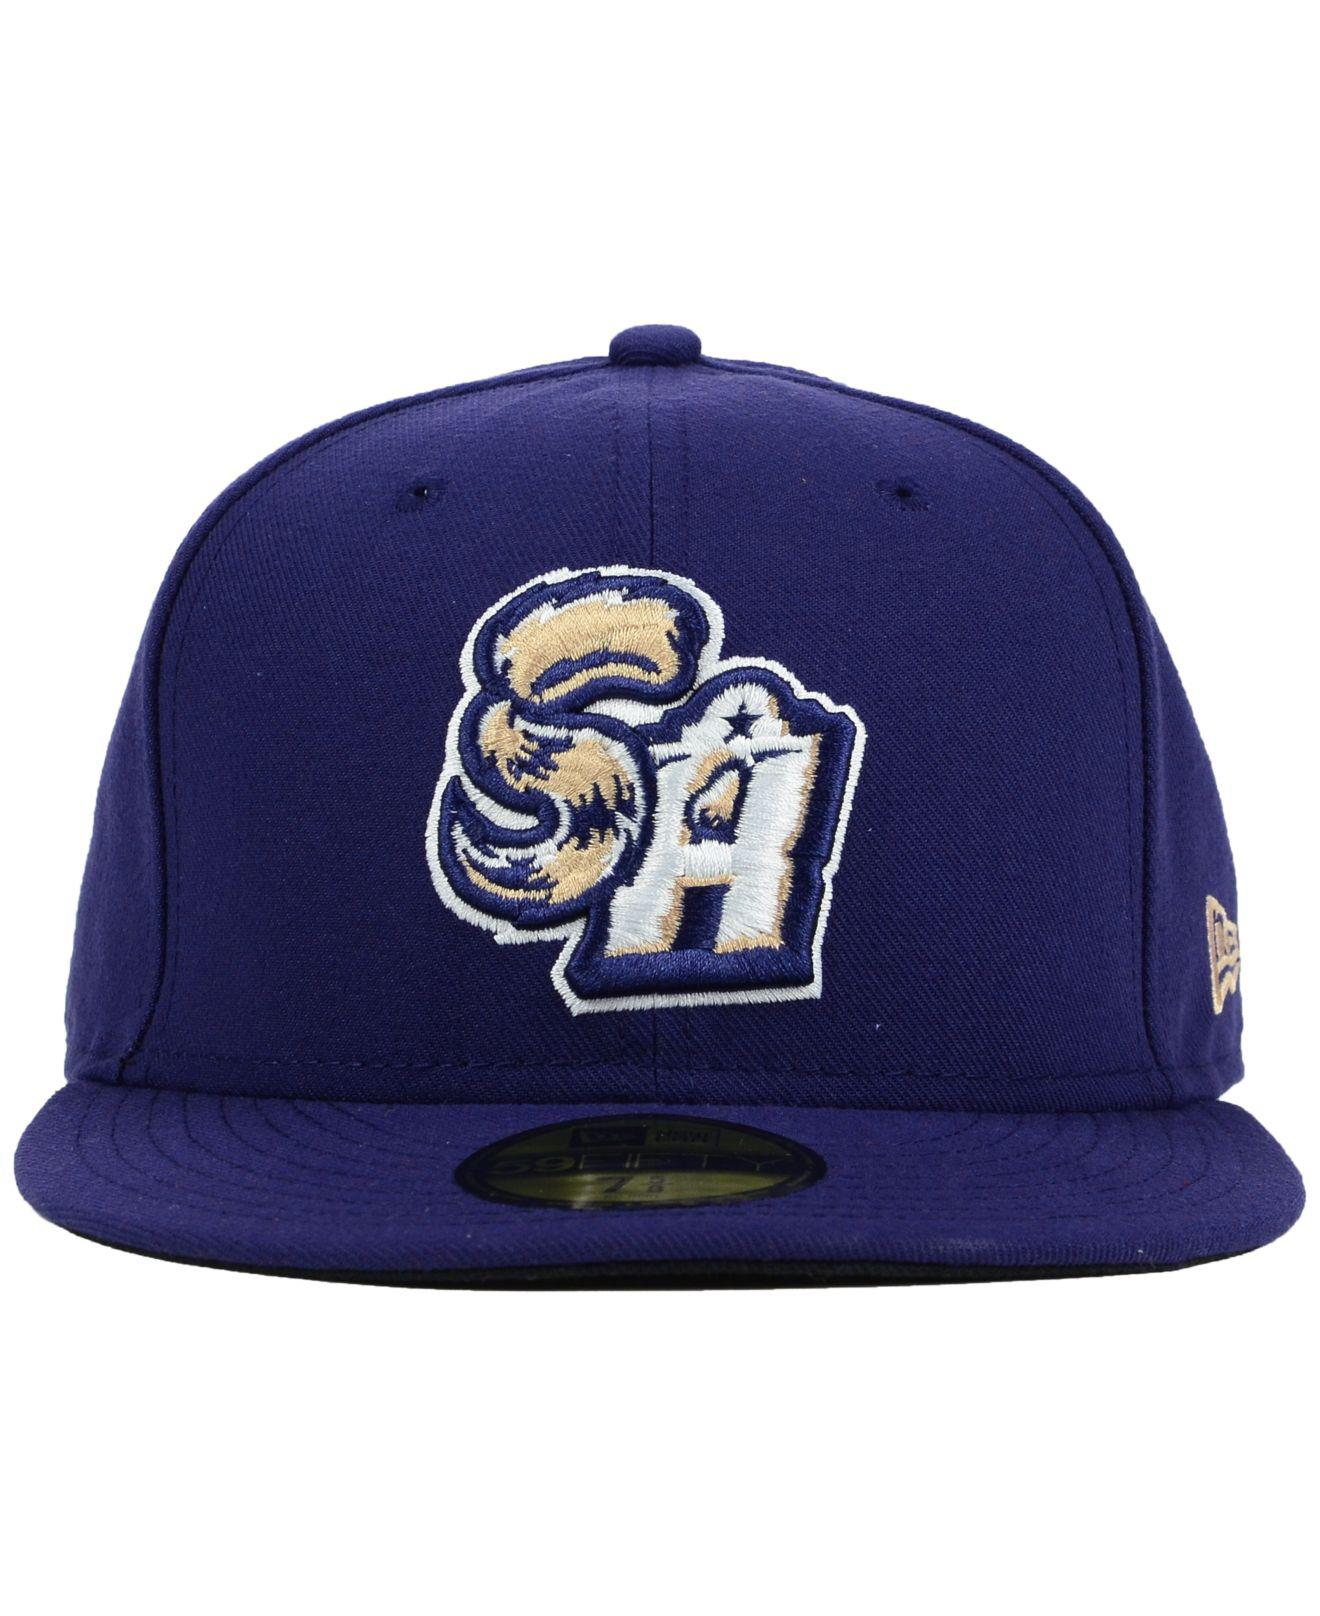 on sale fd27f 0fc3c Lyst - KTZ San Antonio Missions 59fifty Cap in Blue for Men